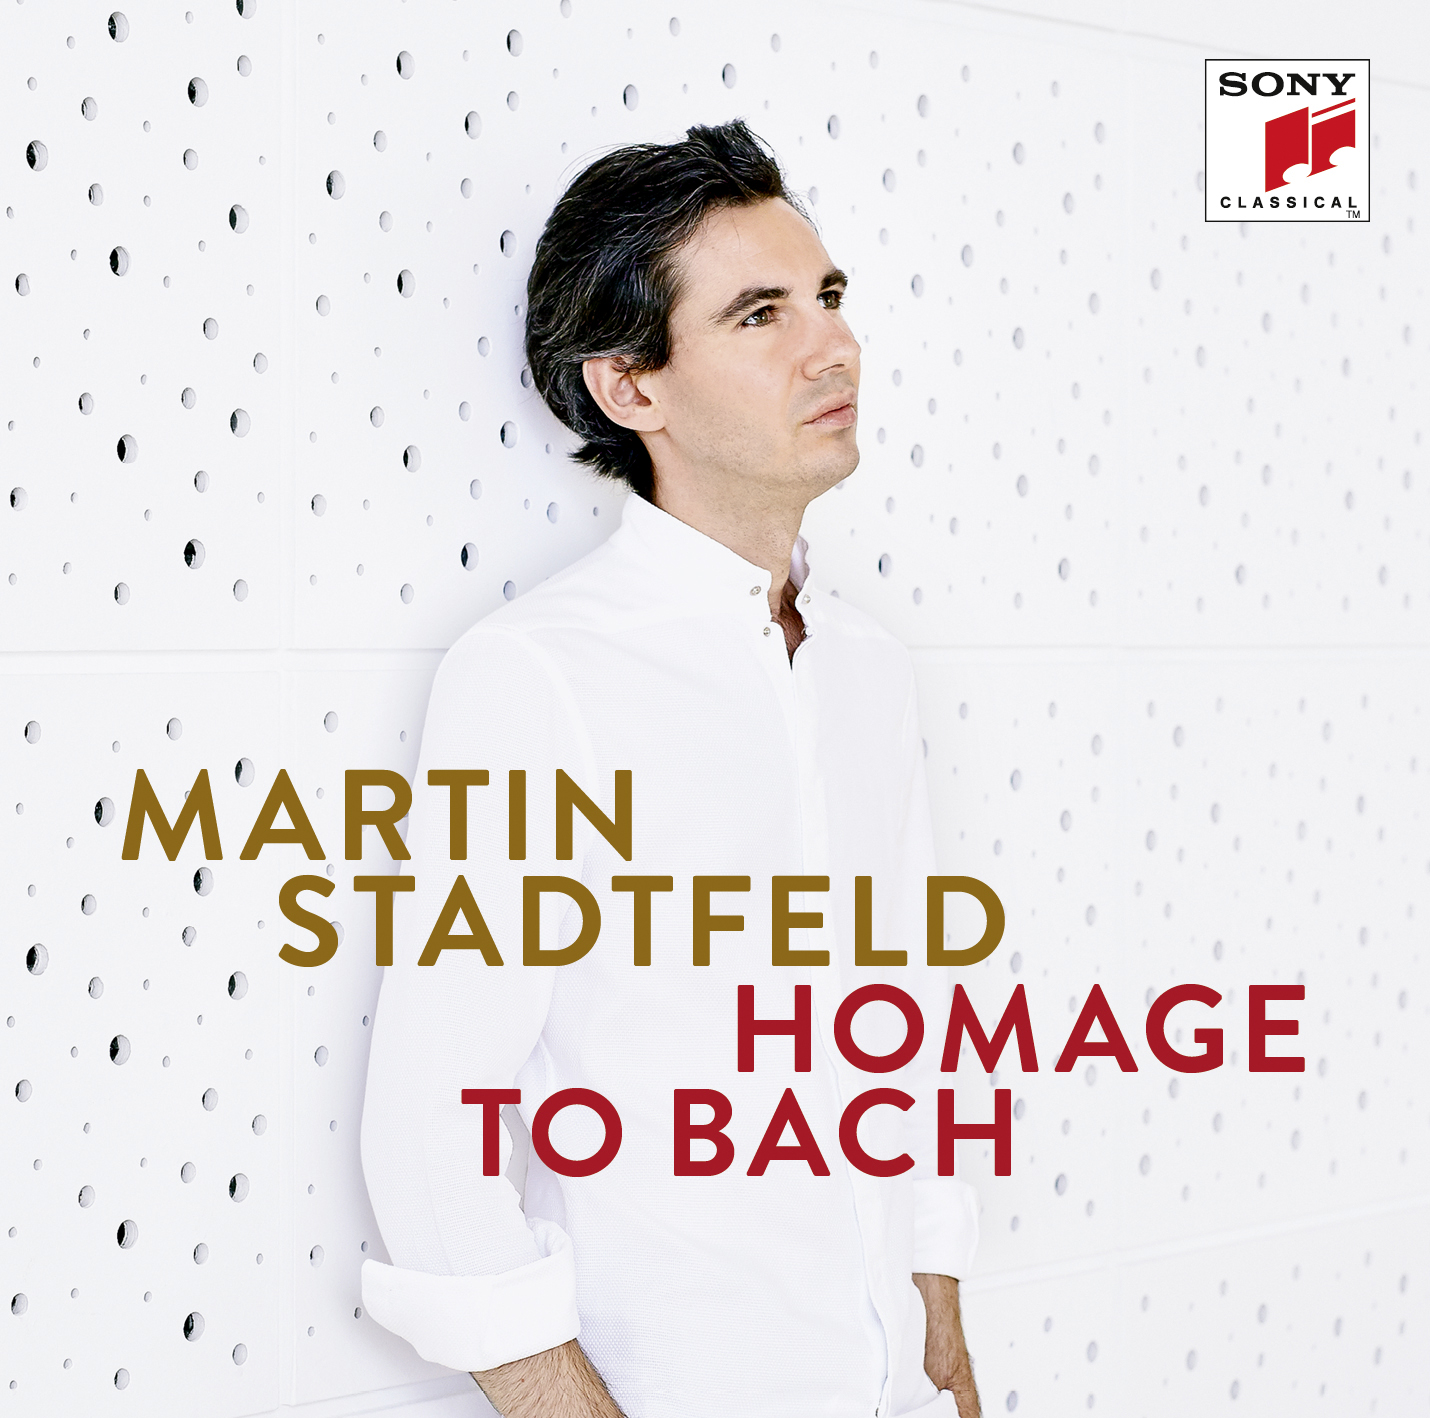 Martin Stadtfeld - Homage to Bach